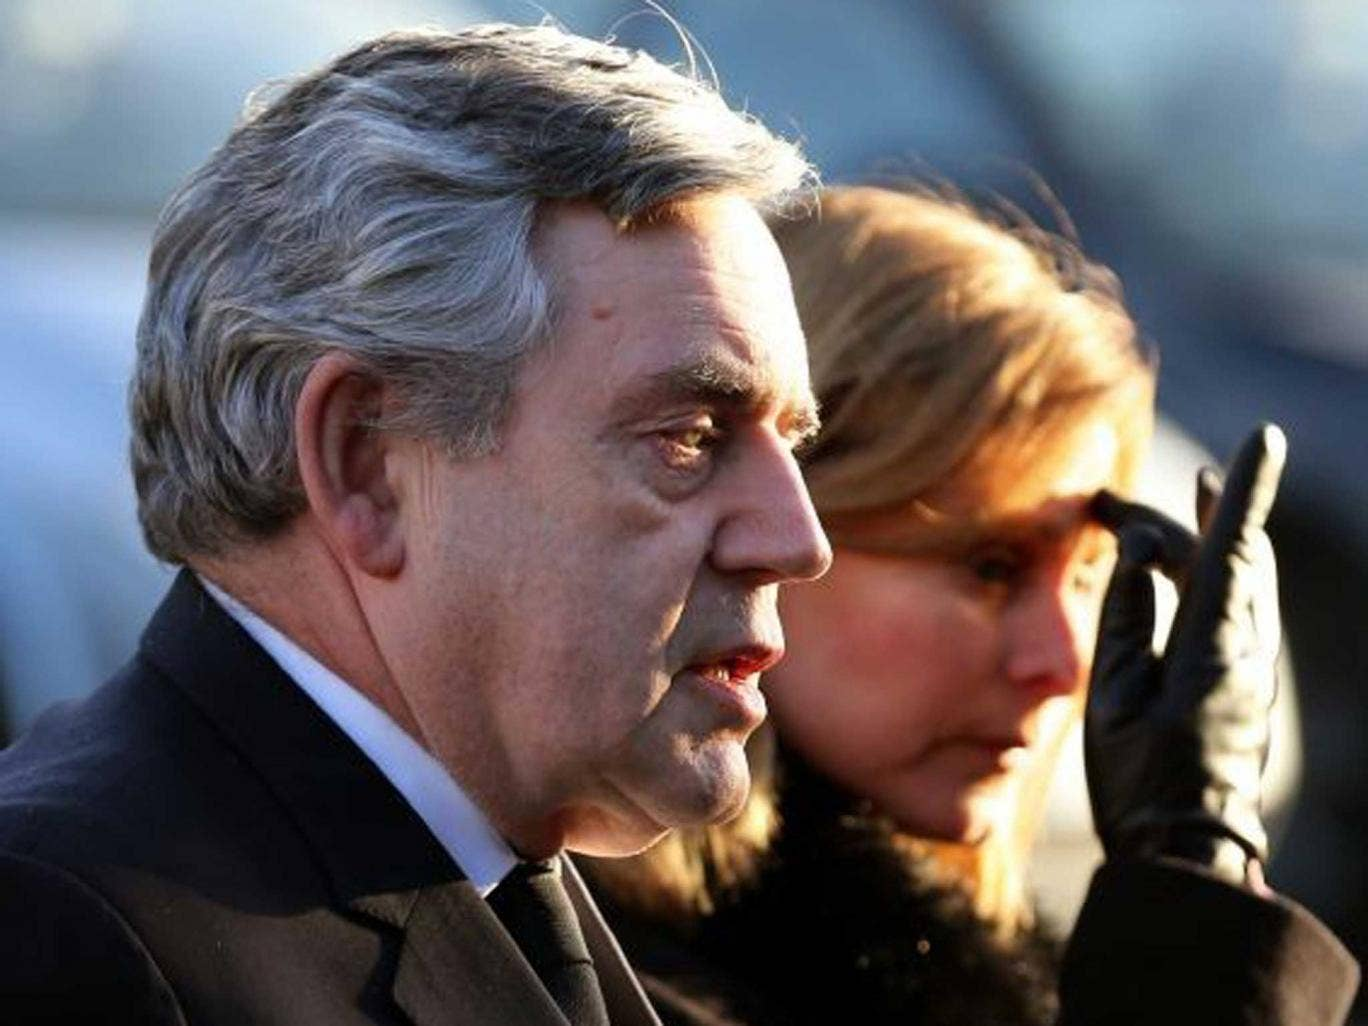 Economic recovery did not prevent former Prime Minister Gordon Brown loosing the election